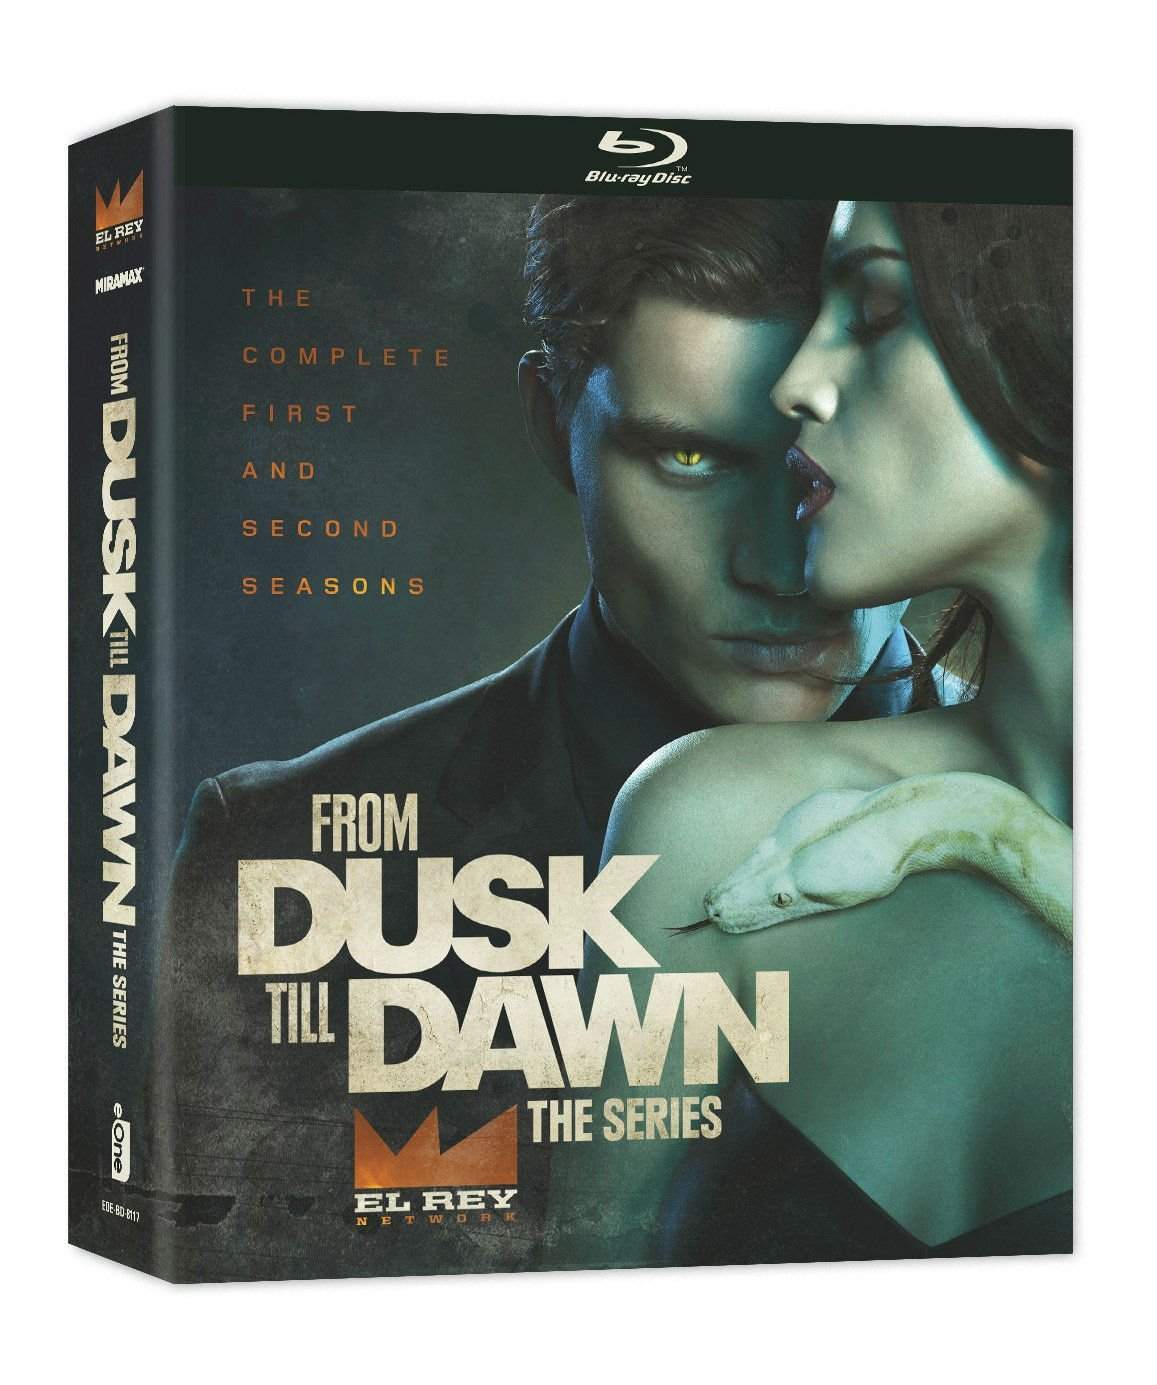 From Dusk Till Dawn Season 1 - Season 2 Blu-ray Box Set